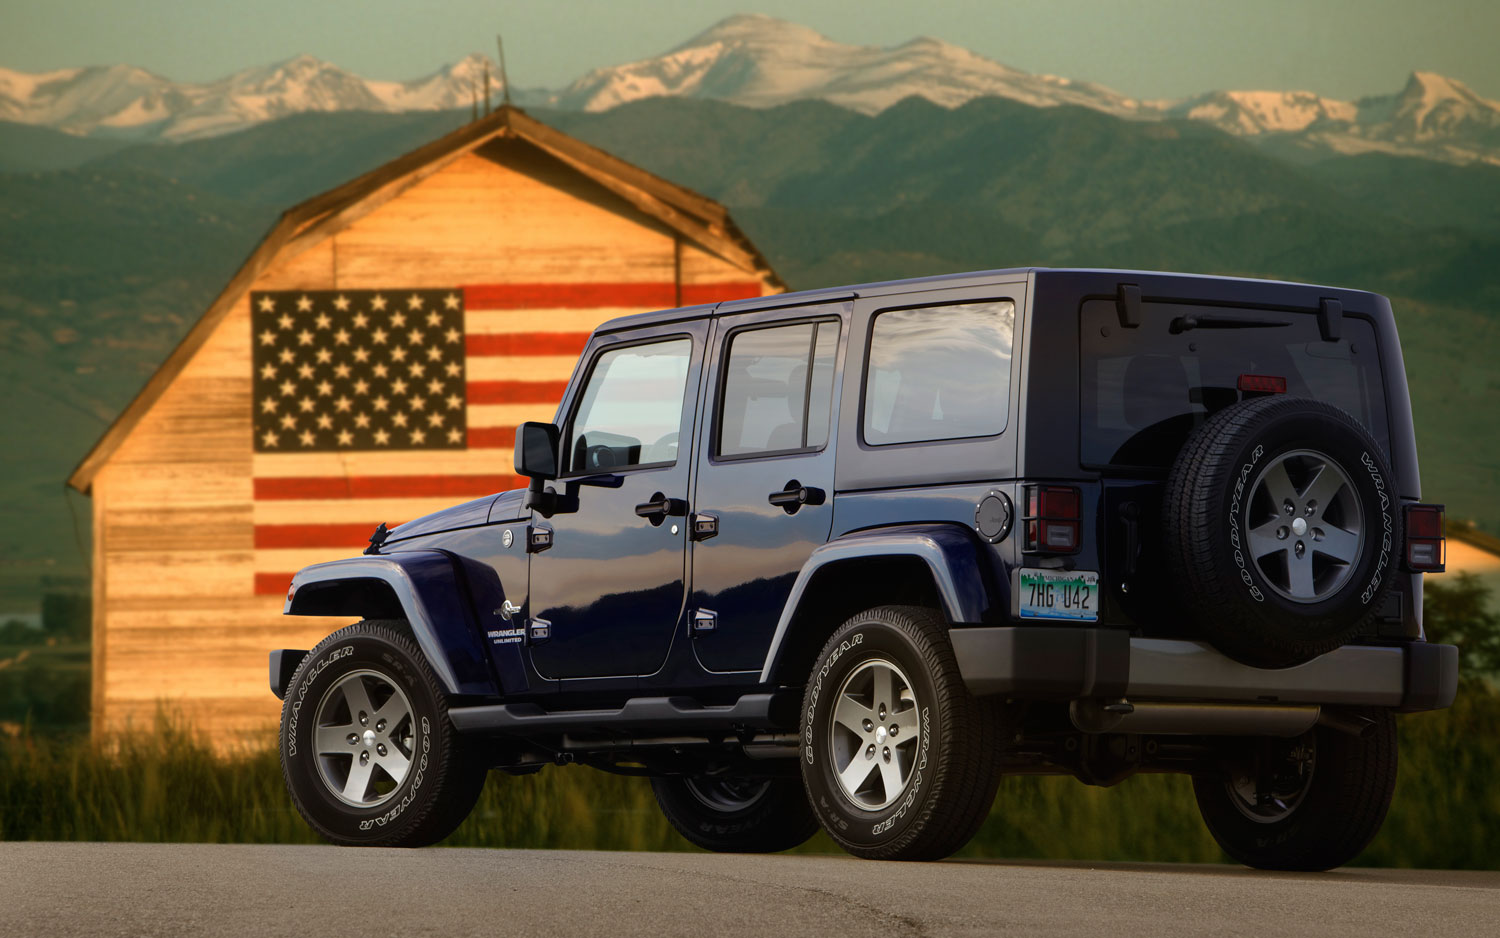 2012 Jeep Wrangler Freedom Edition Gives Back To The Troops